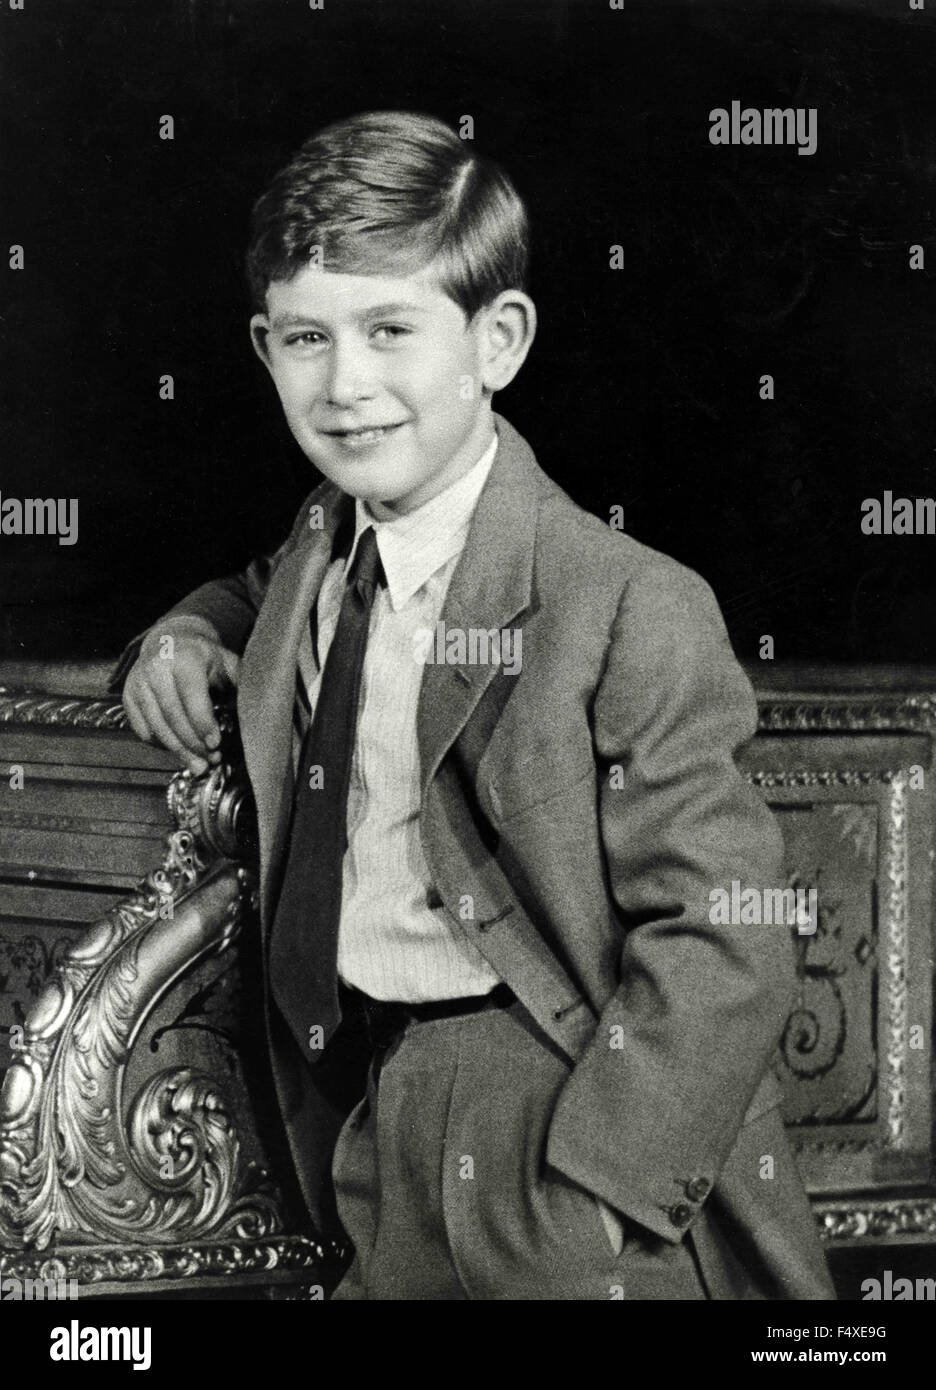 The young 21st Prince of Wales Charles of England - Stock Image